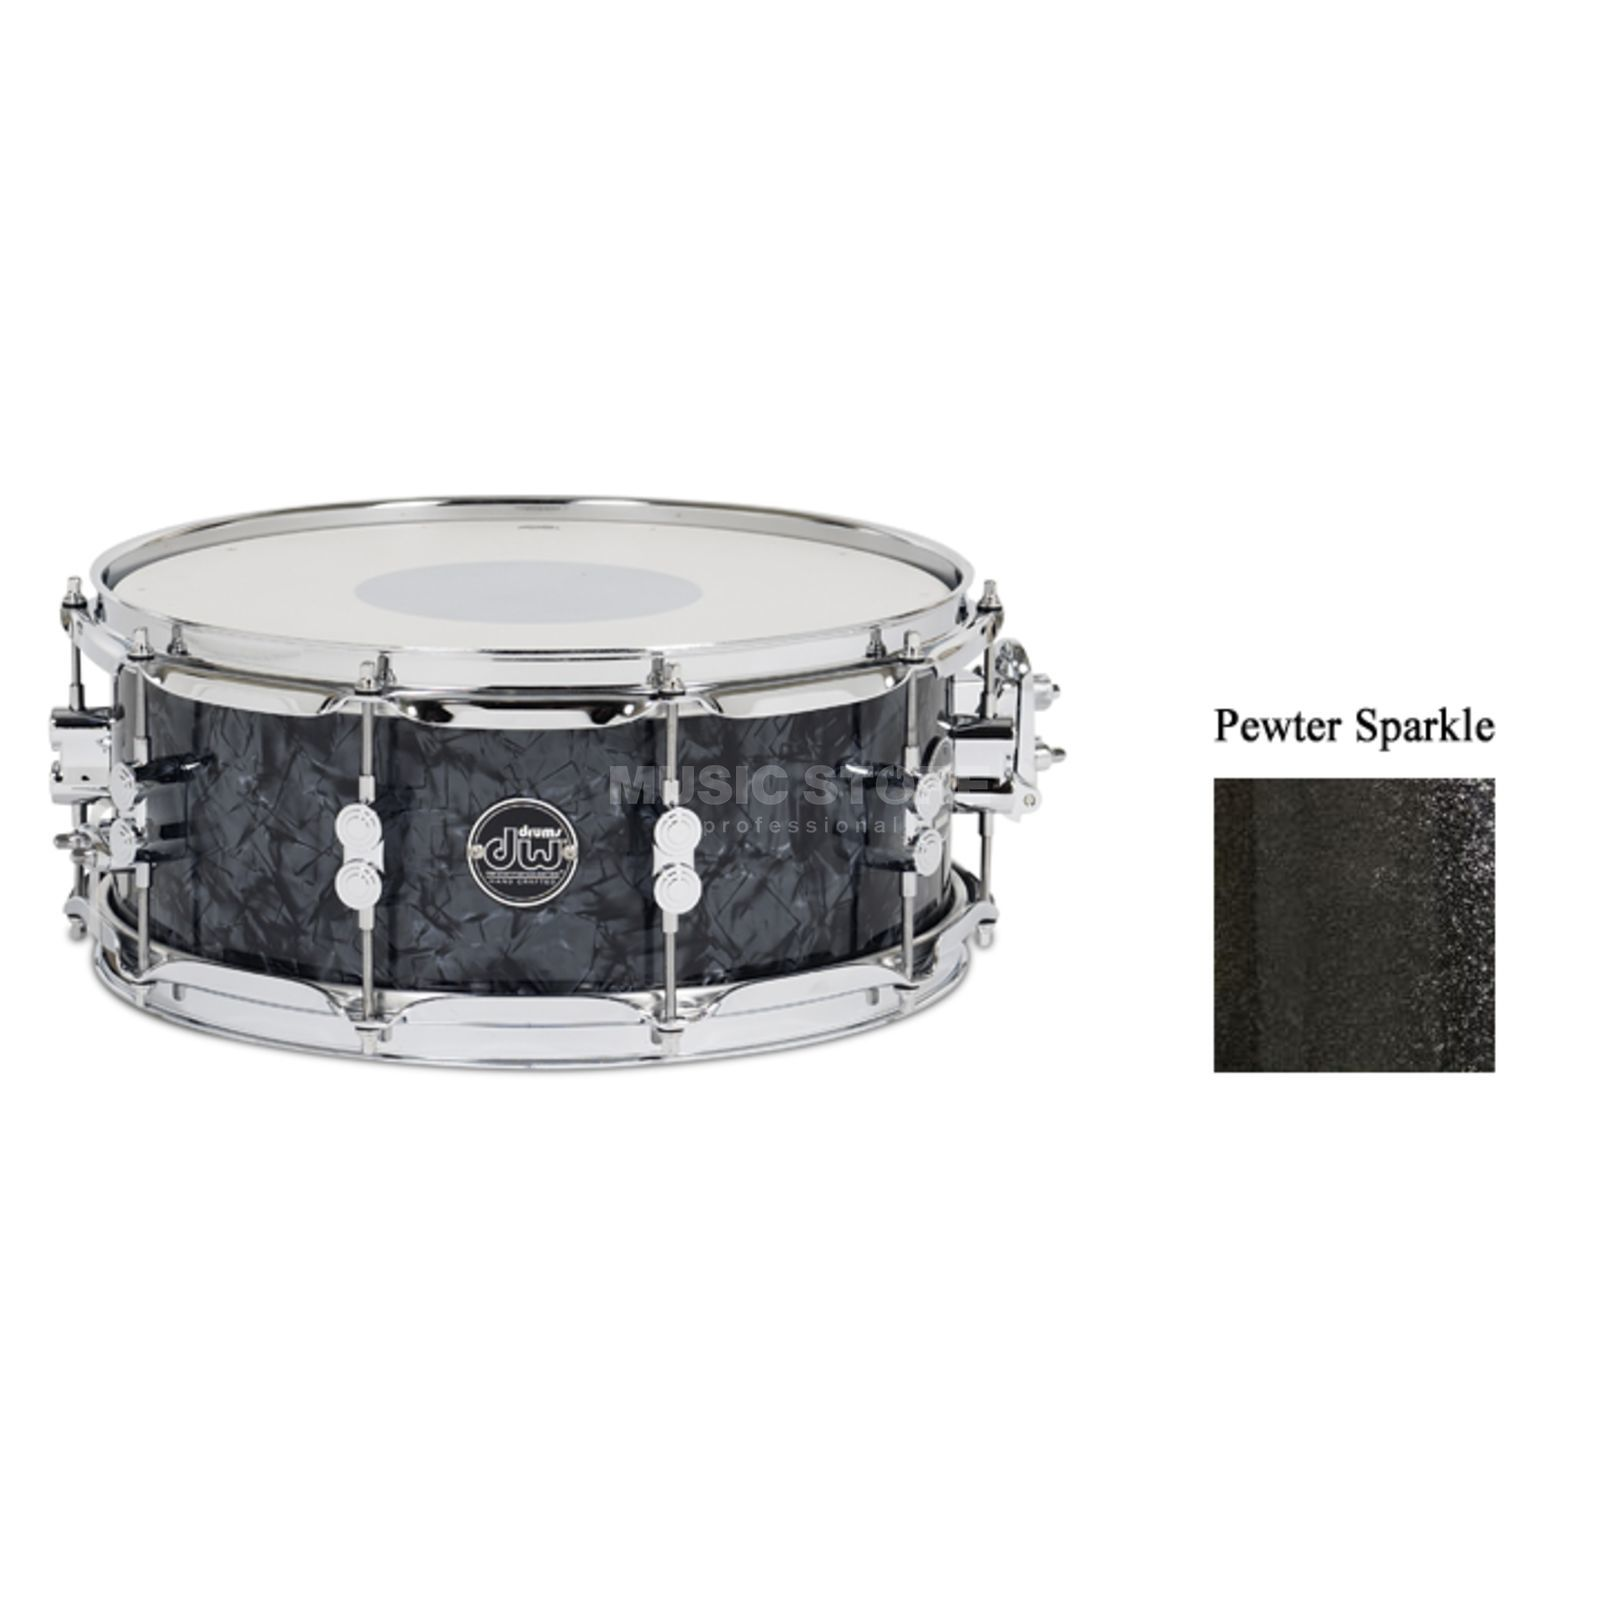 "Drum Workshop Performance Snare 14""x5,5"", Pewter Sparkle Produktbillede"